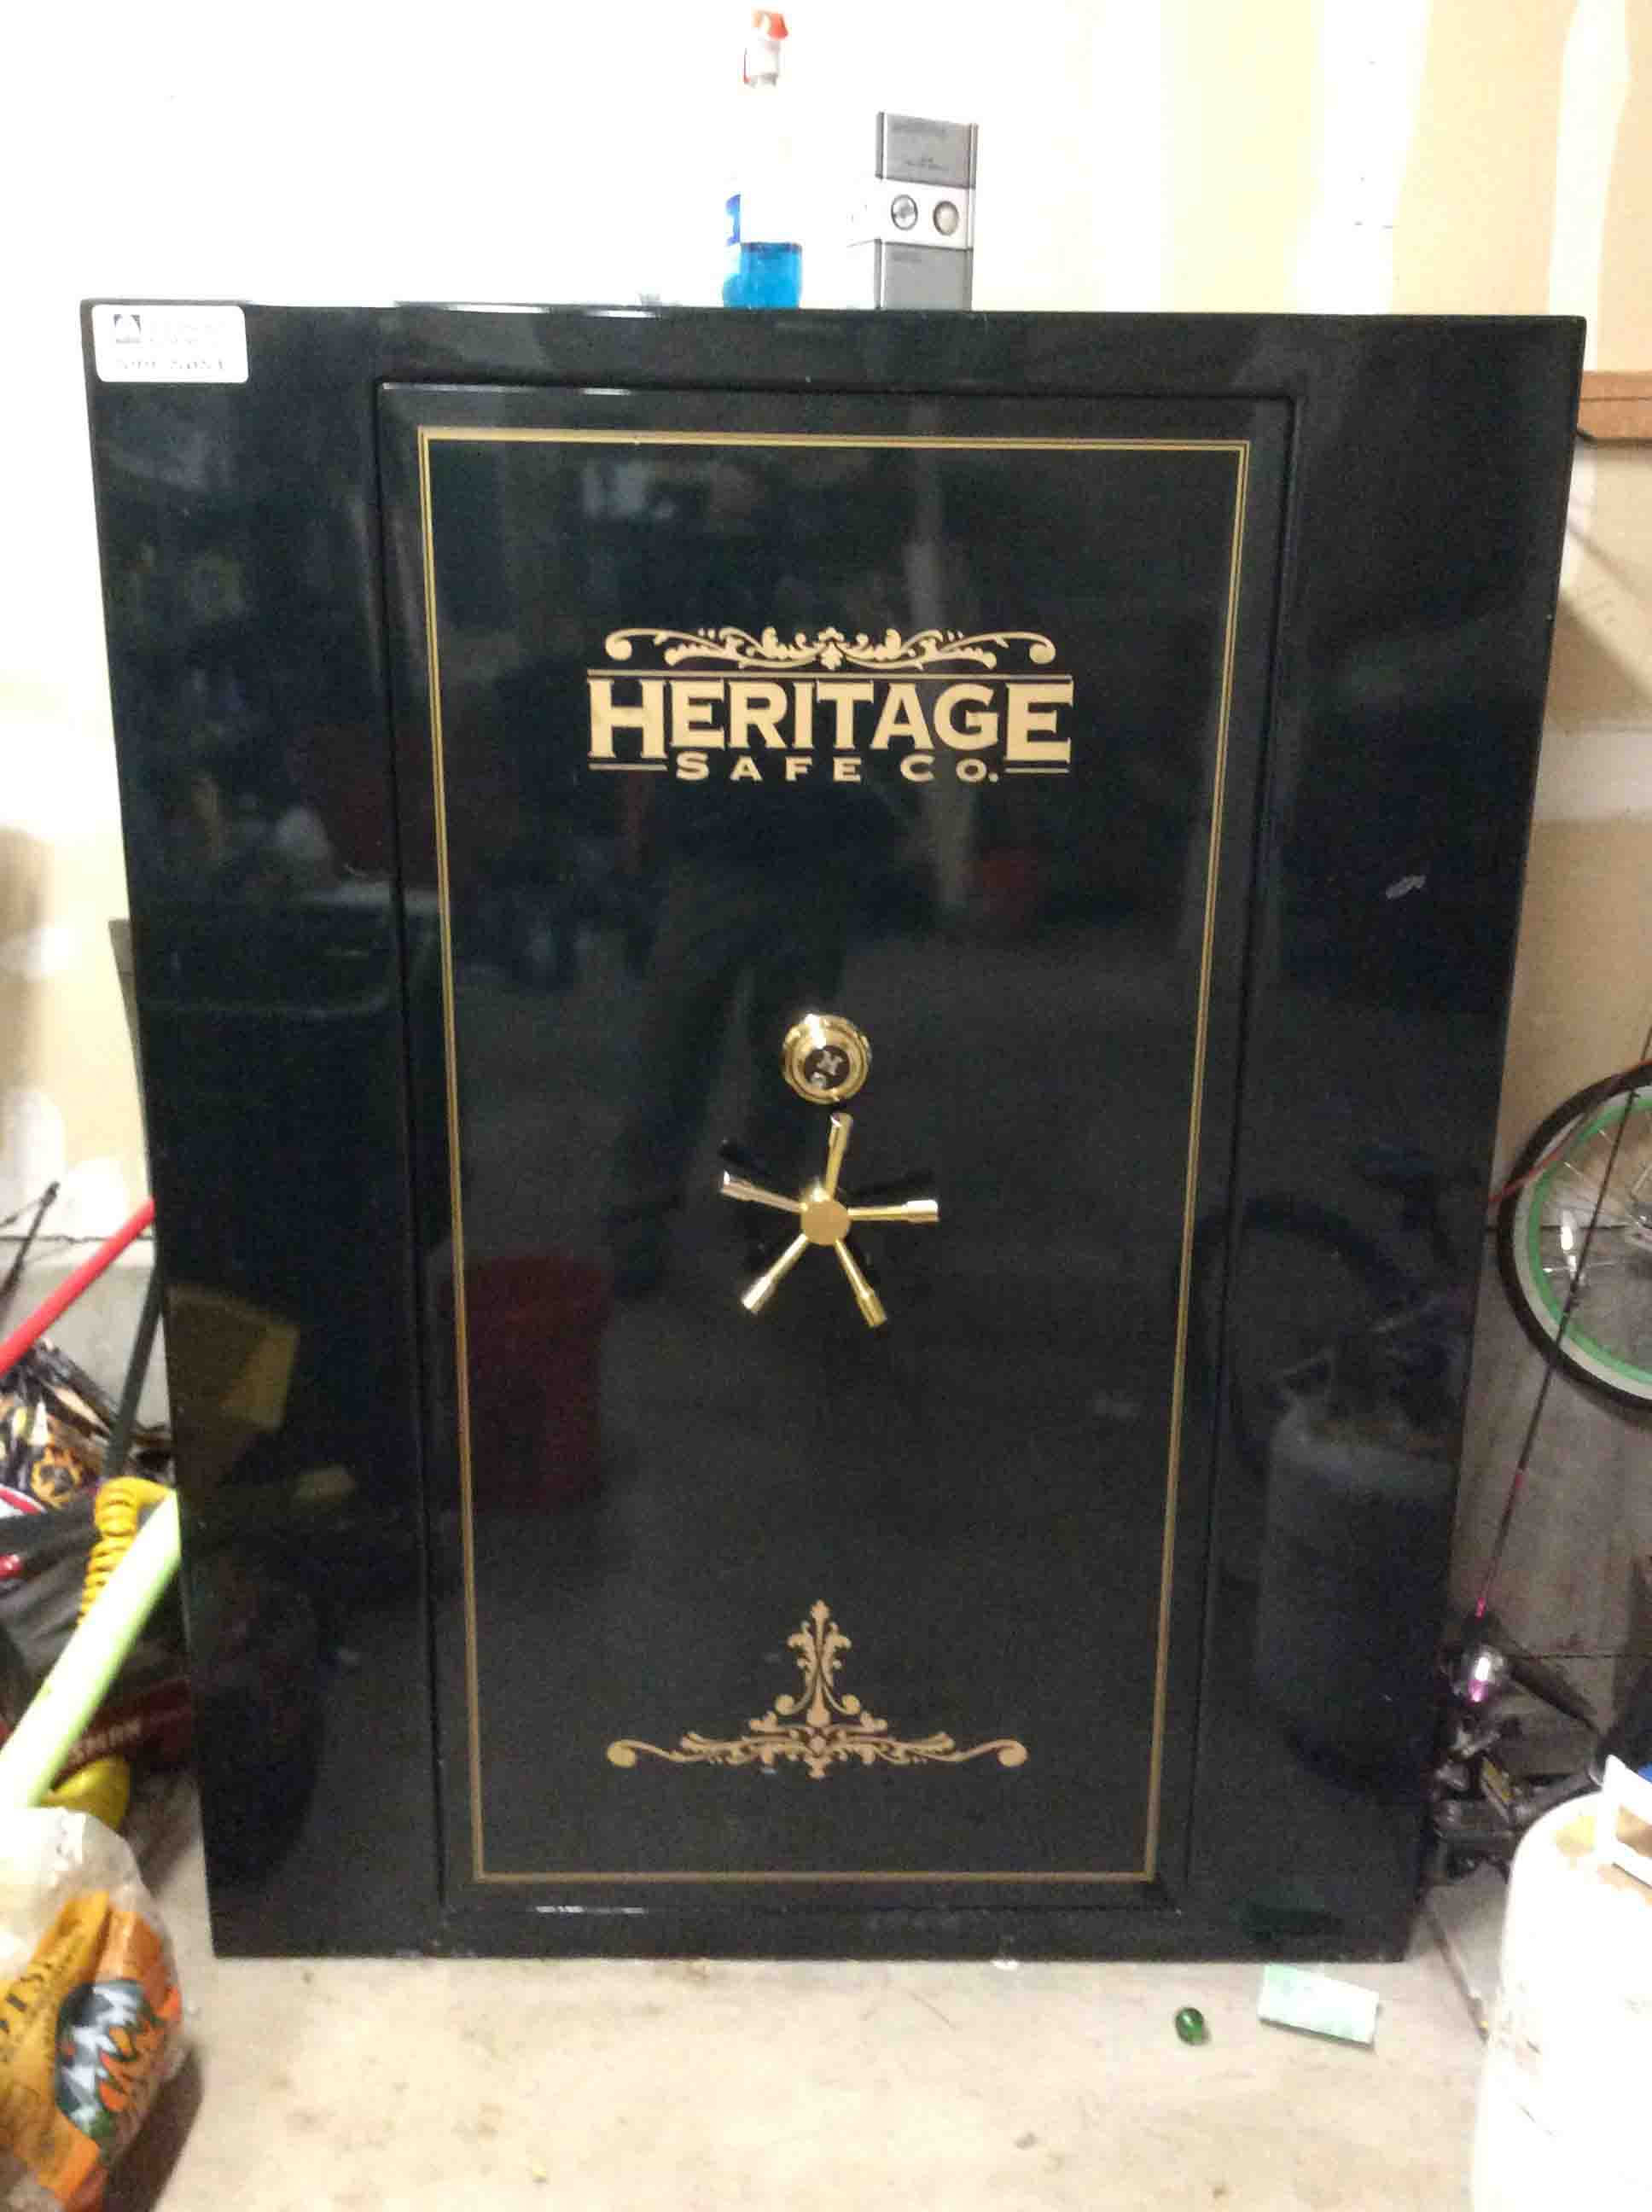 *USED* Heritage Traditional TX5672 Safe - 76 Gun 75 Min Fire Rated Safe